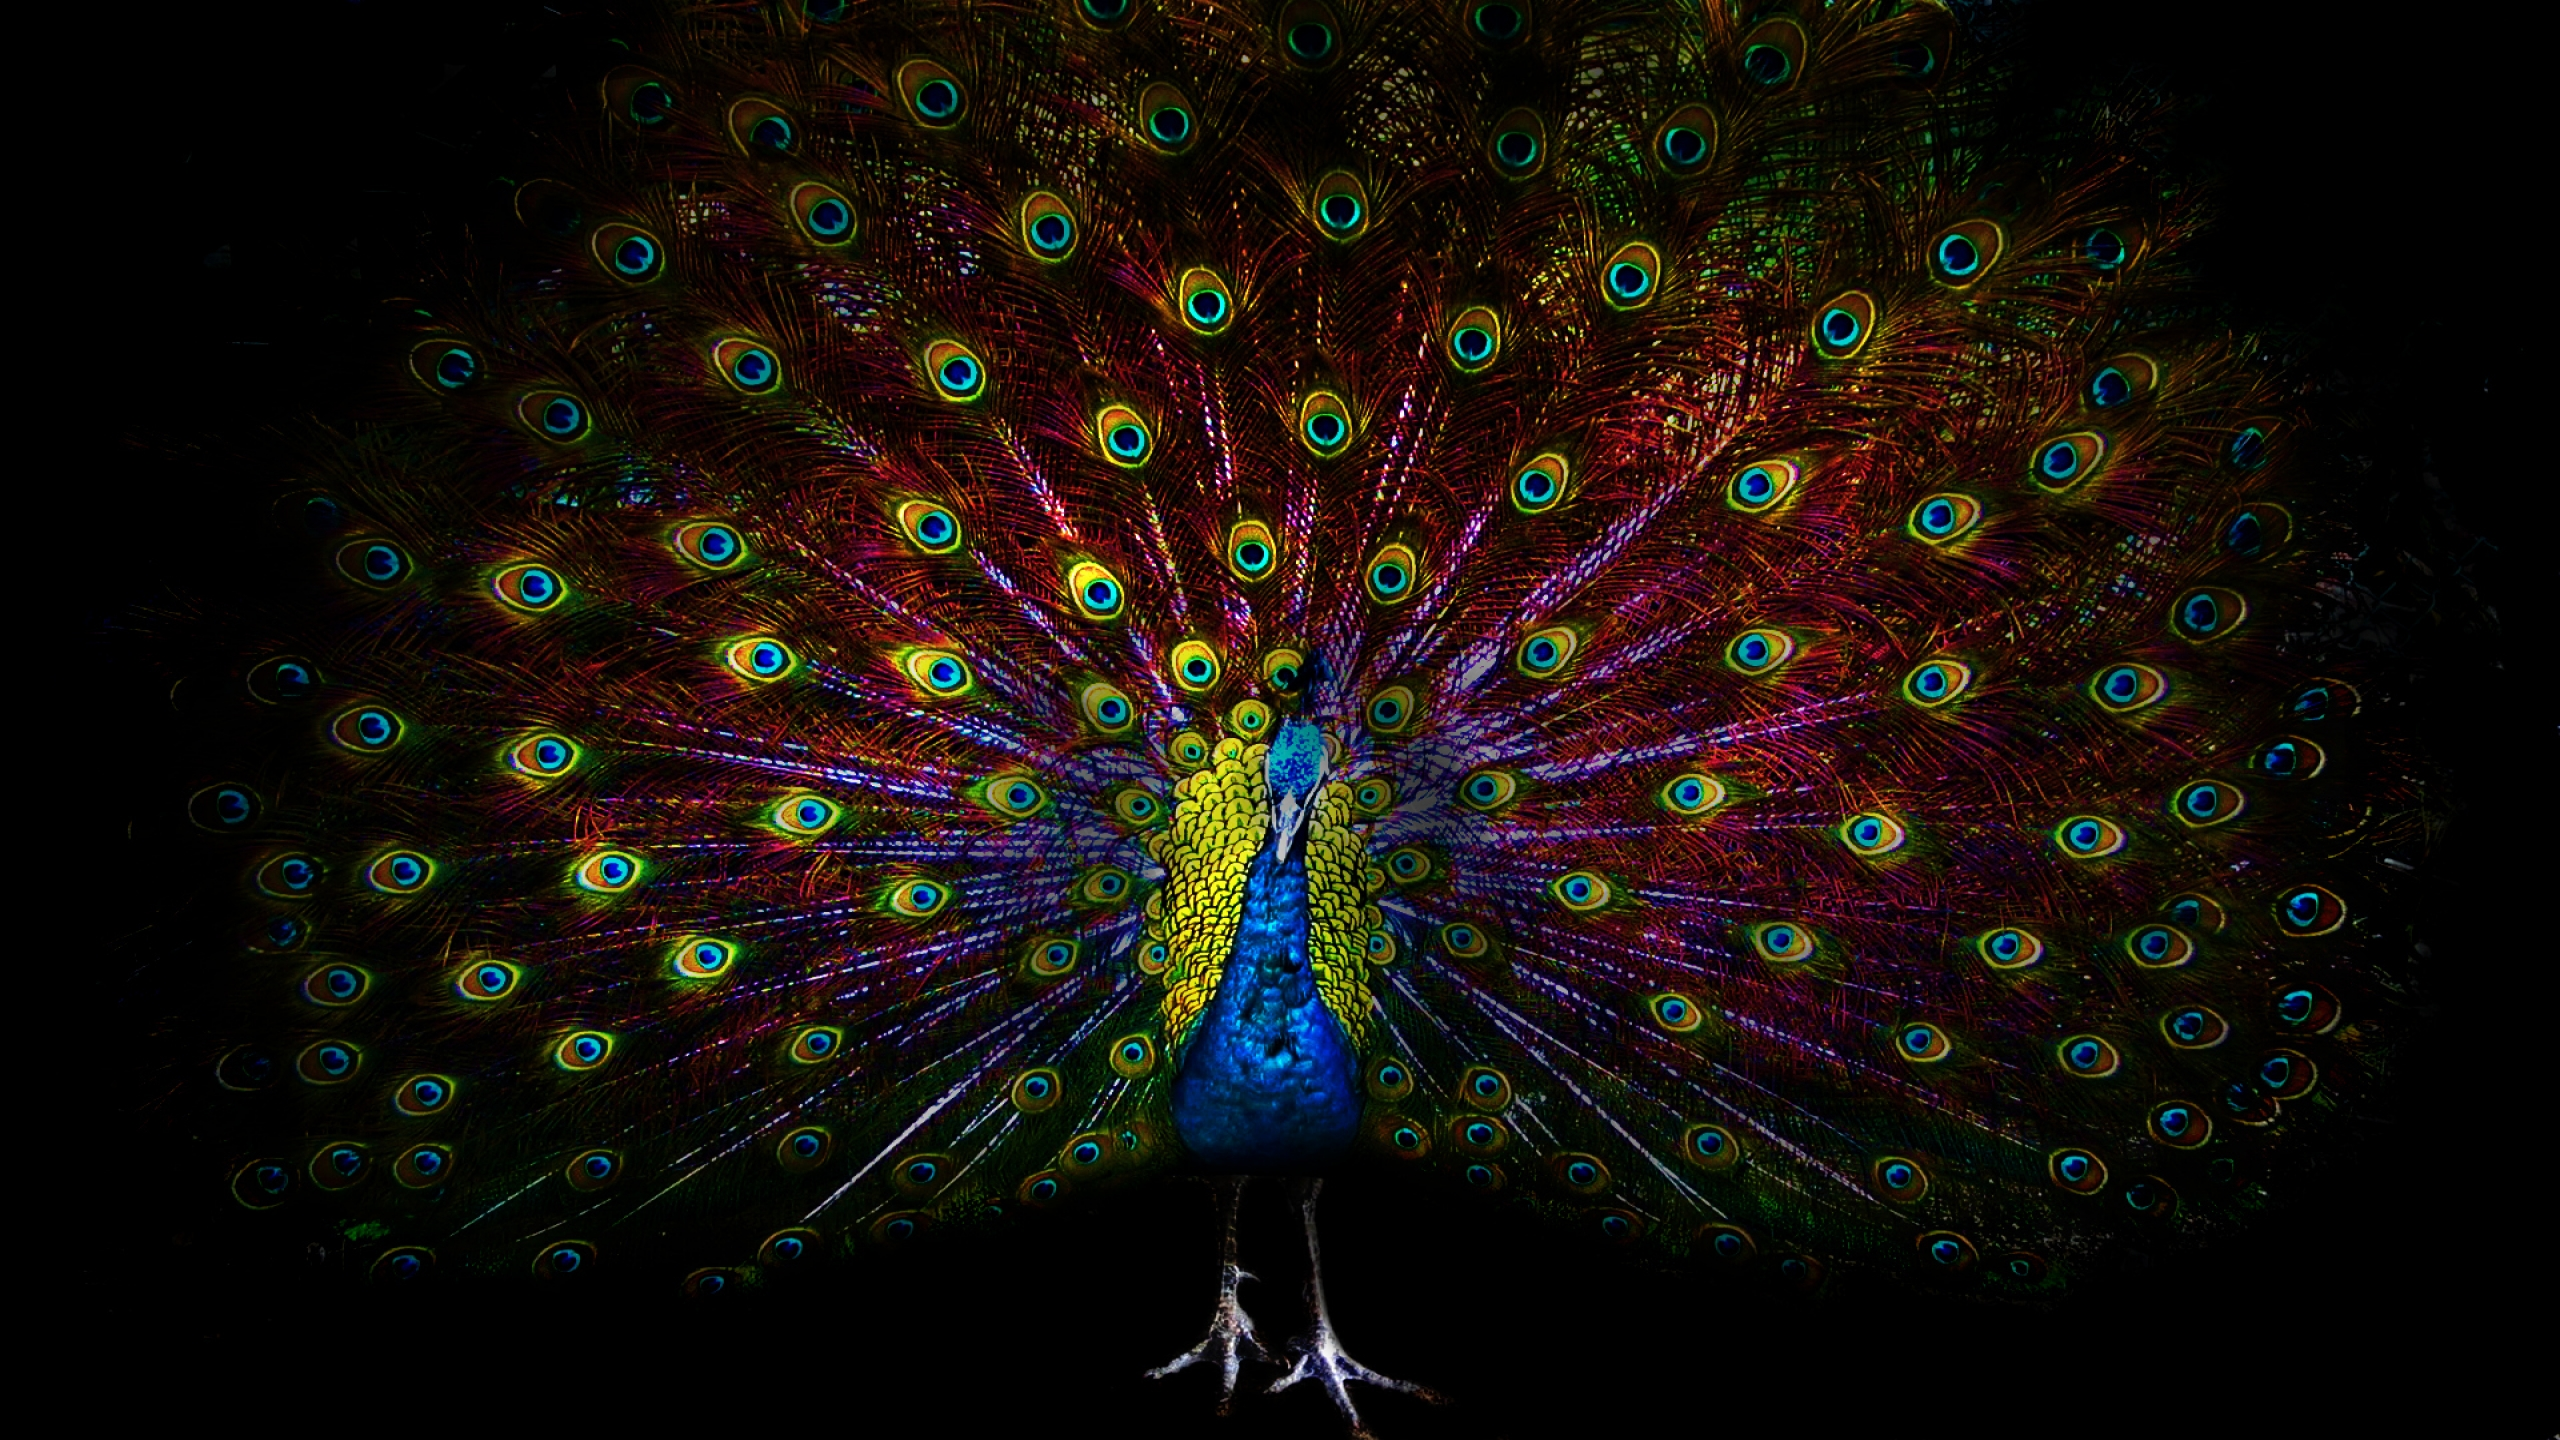 peacock hd wallpaper background image 2560x1440 id 727004